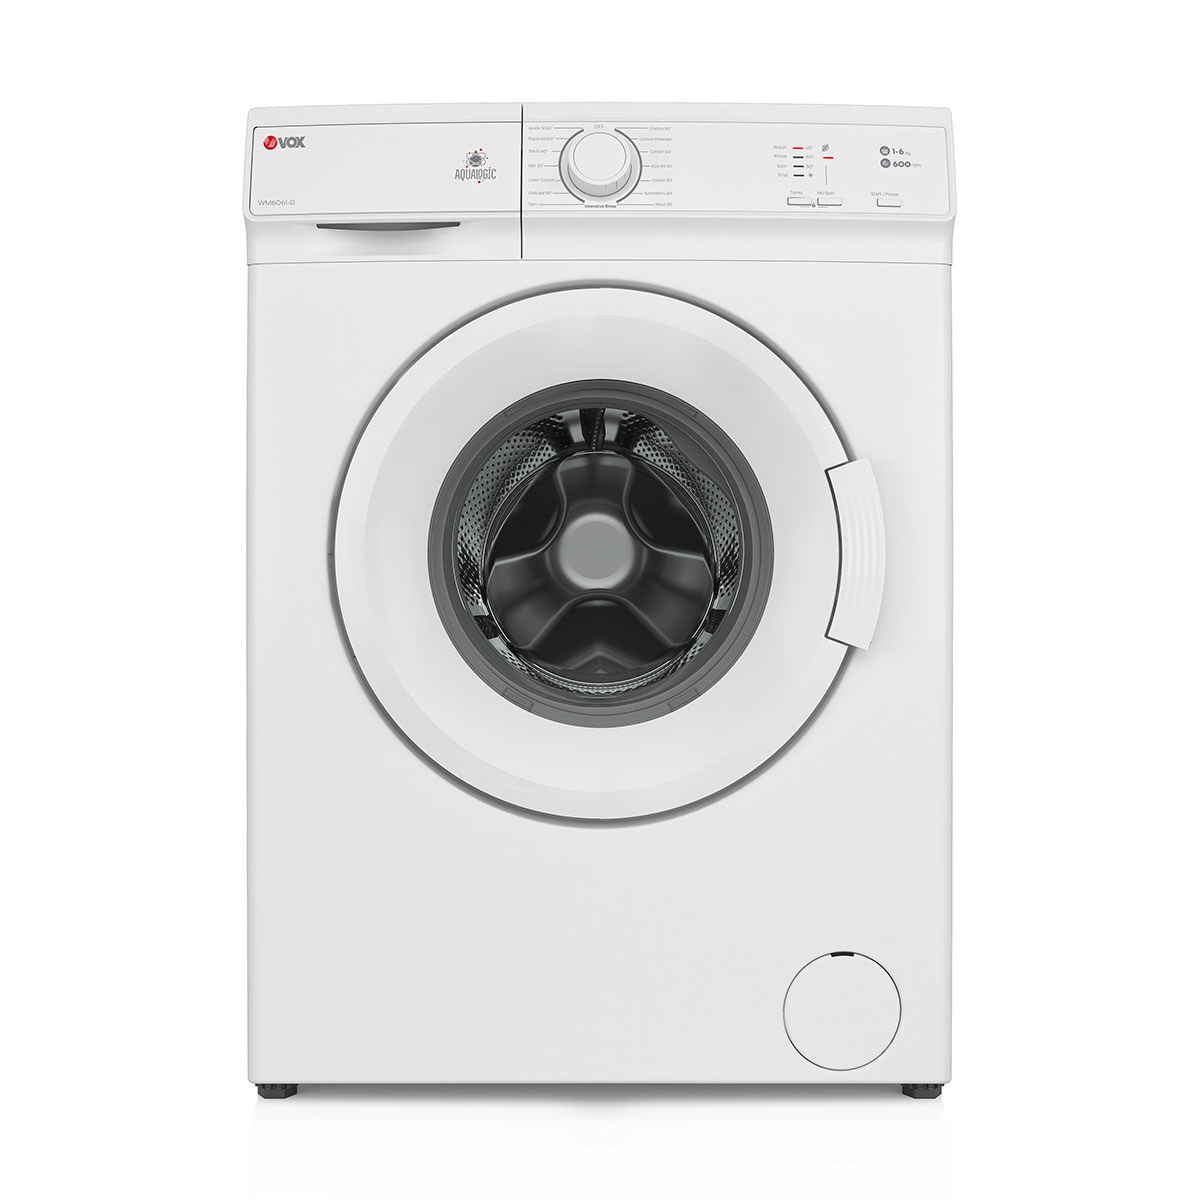 Washing machine WM6061-D